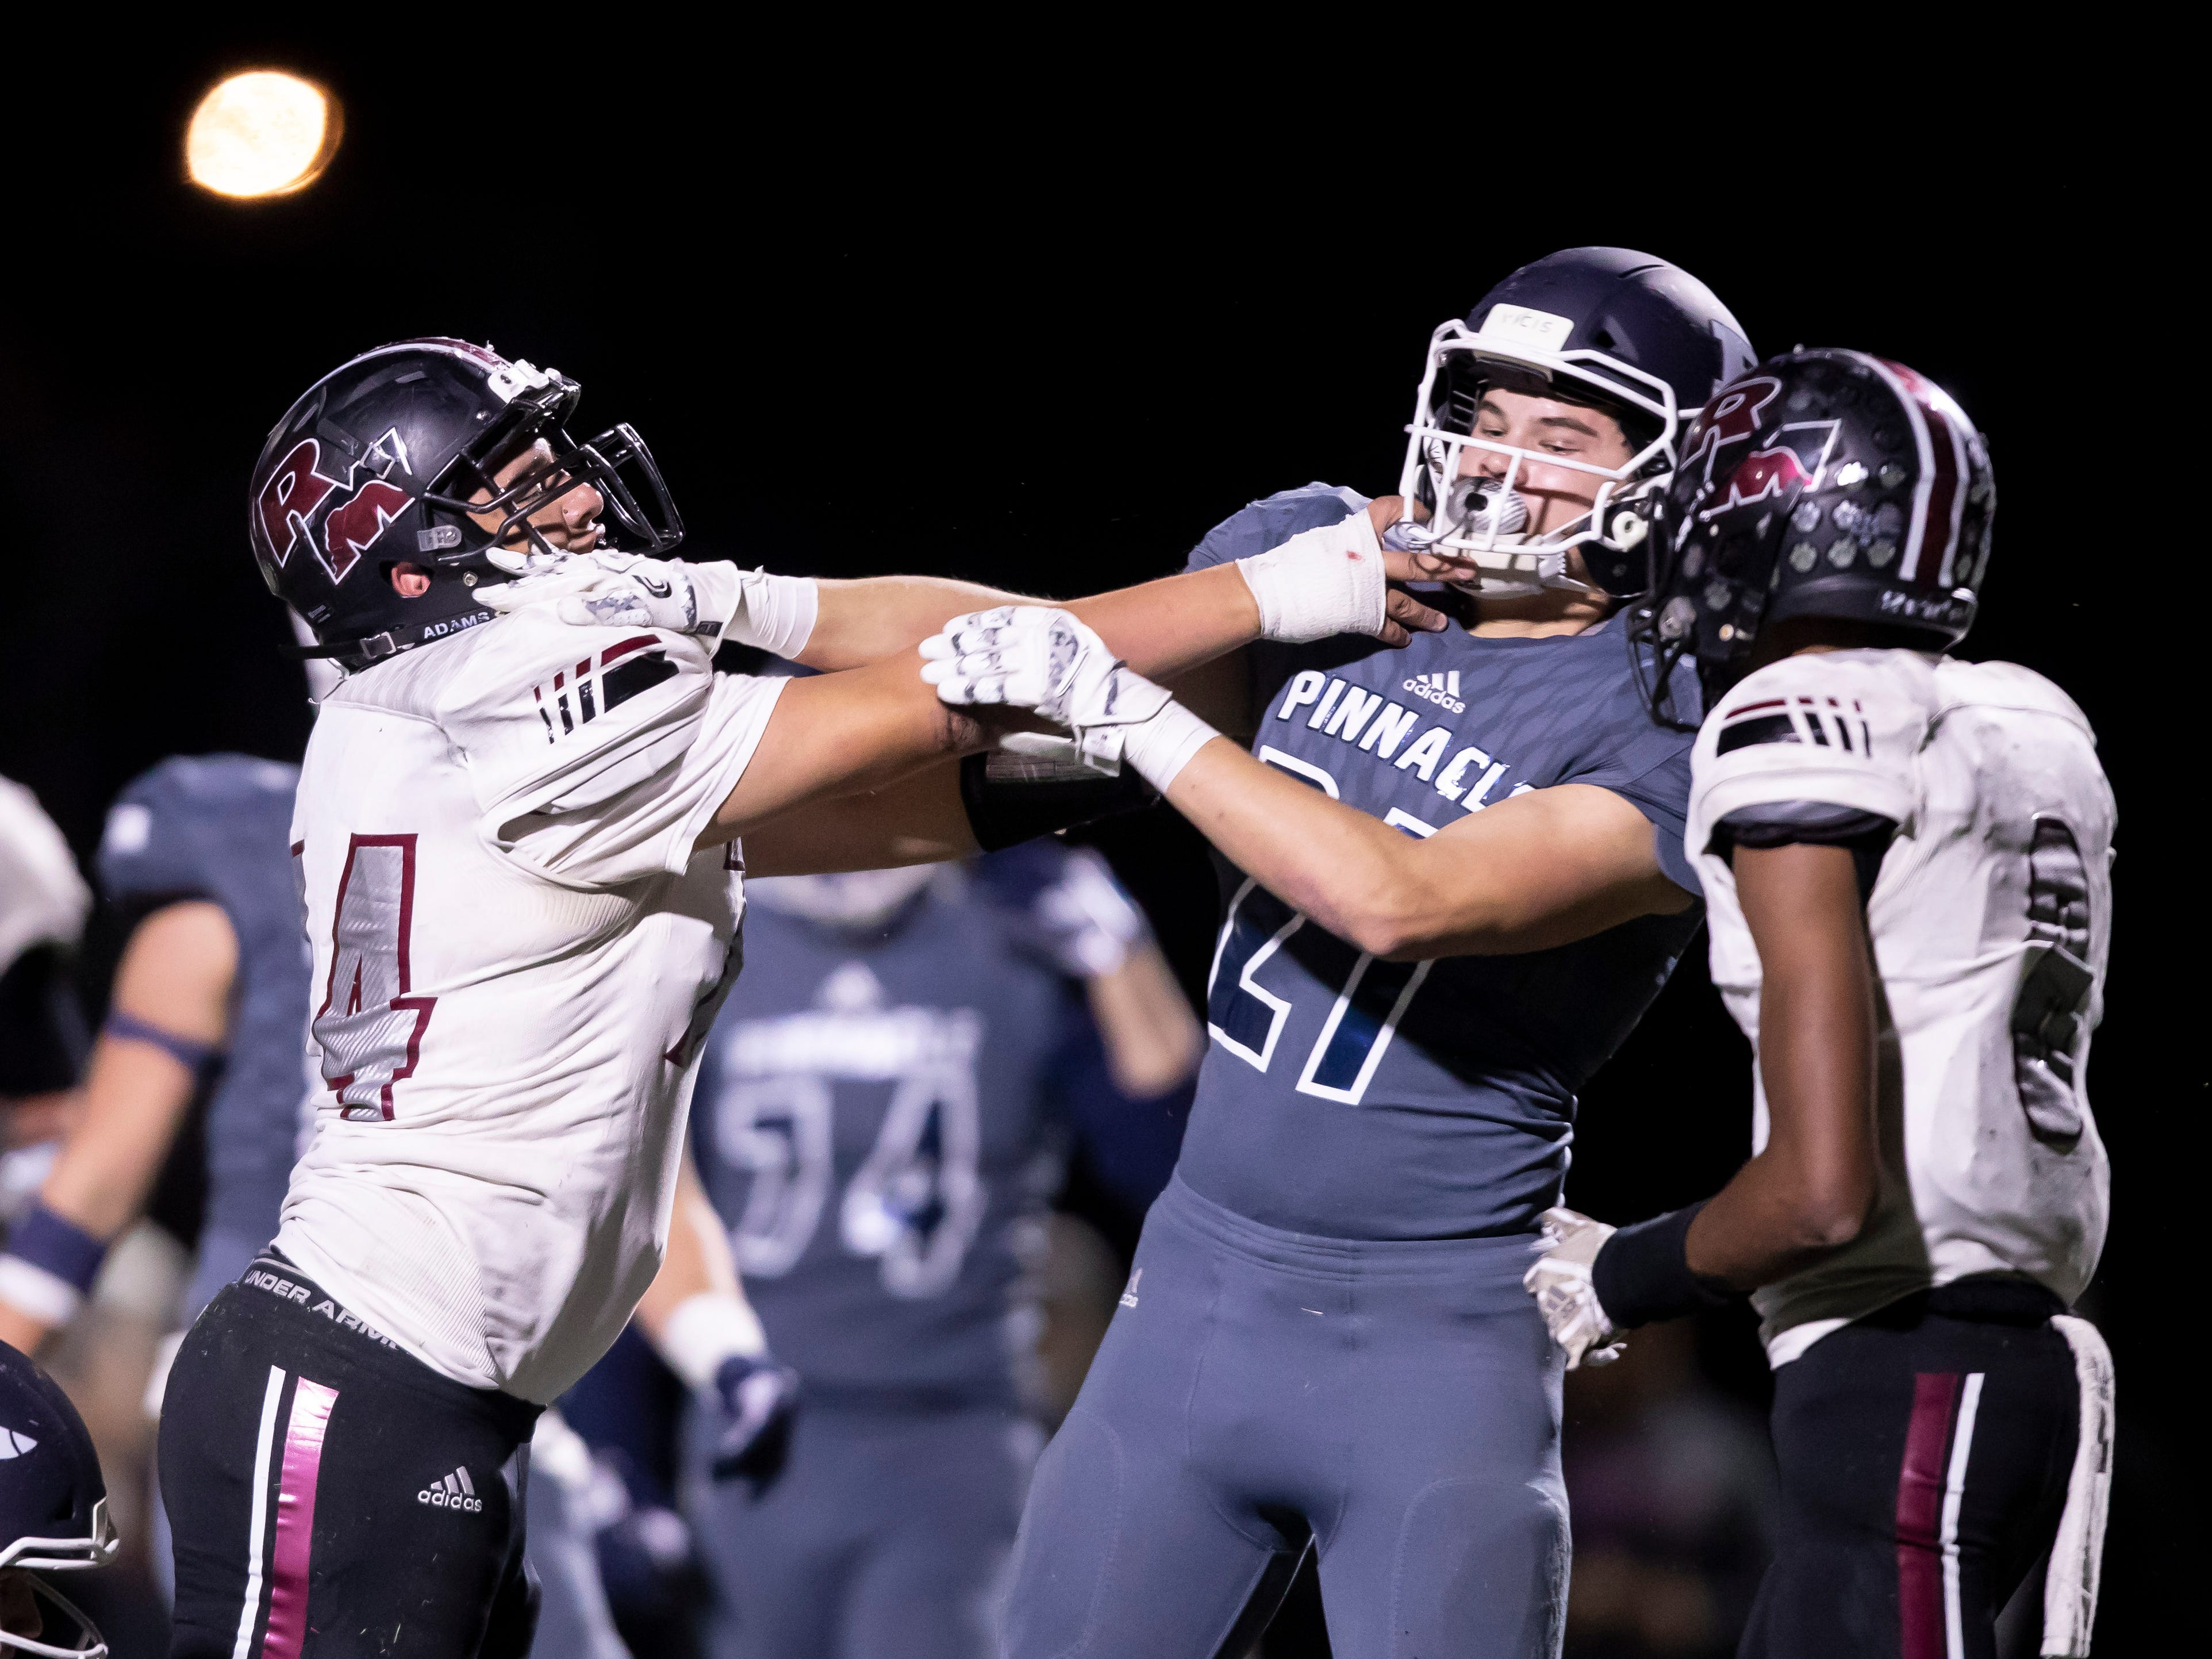 Senior guard Francisco Saucedo (74) of the Red Mountain Mountain Lions and junior linebacker Cooper Dirck (27) of the Pinnacle Pioneers shove each other following a play during the playoff game at Pinnacle High School on Friday, November 9, 2018 in Phoenix, Arizona. #azhsfb